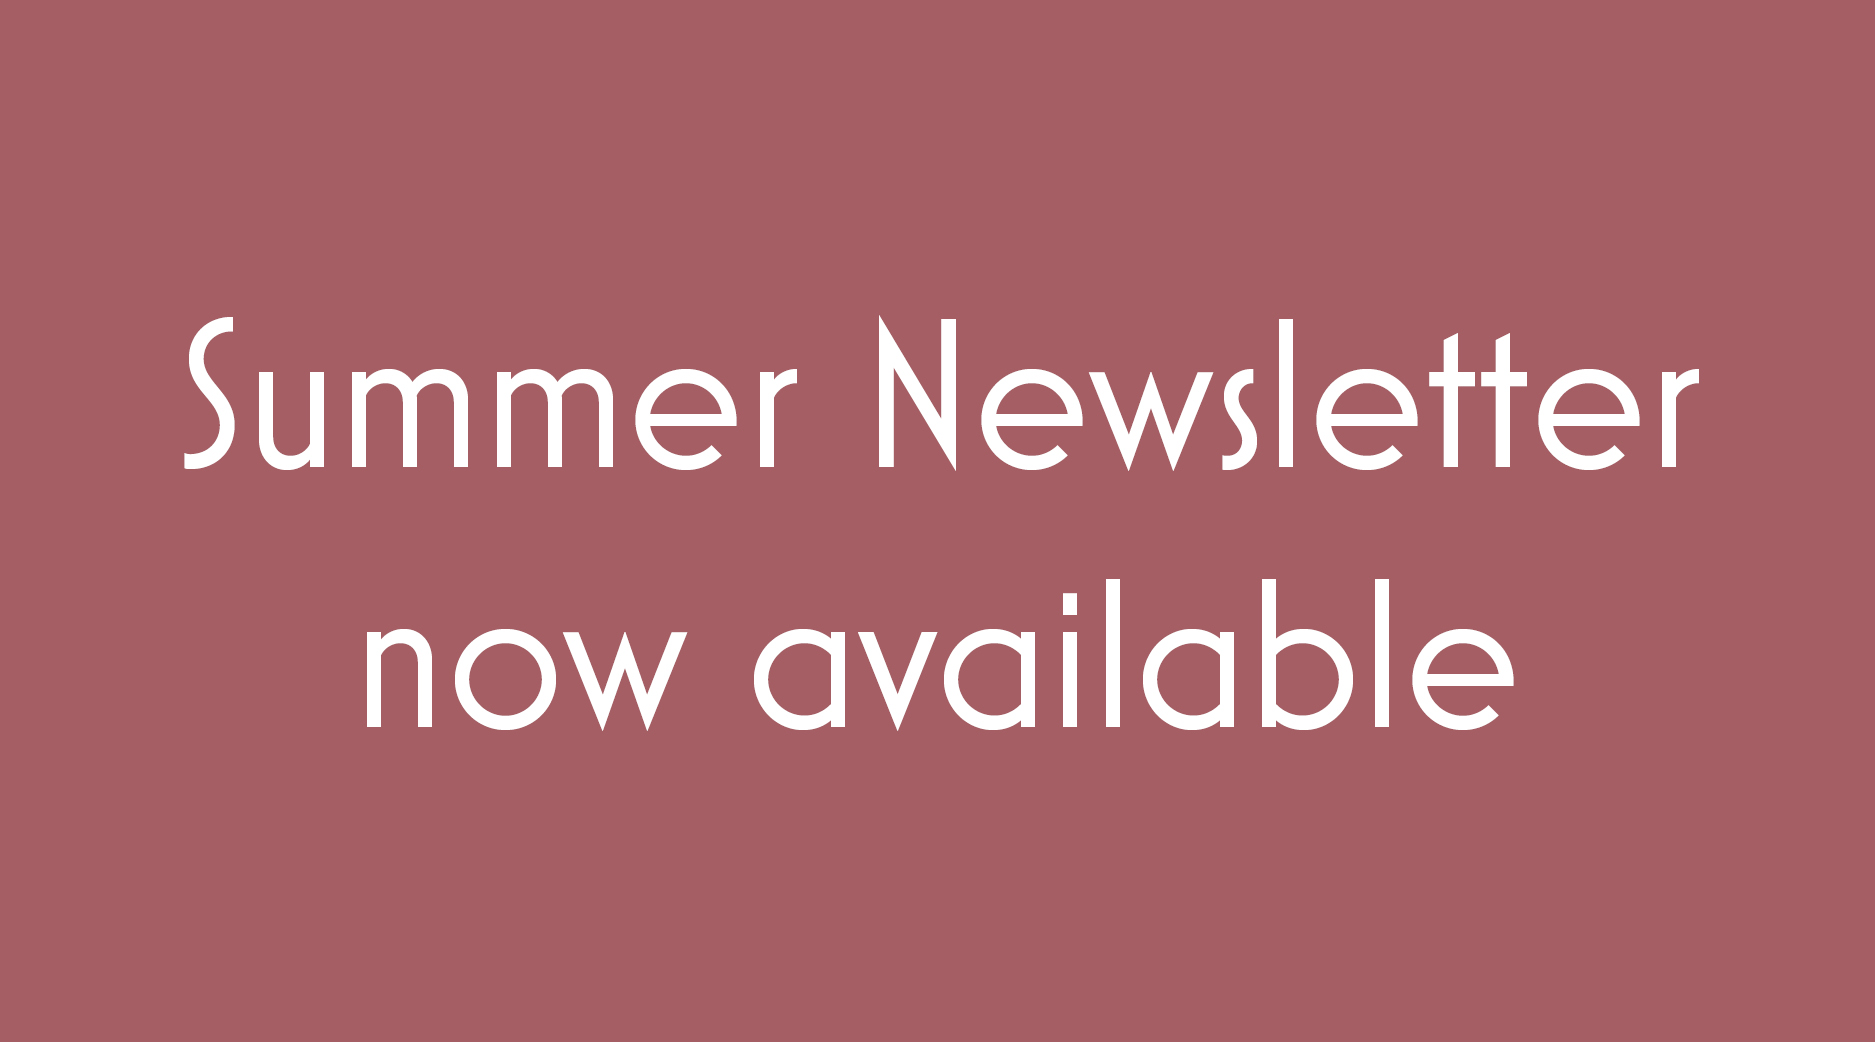 Summer Newsletter Now Available